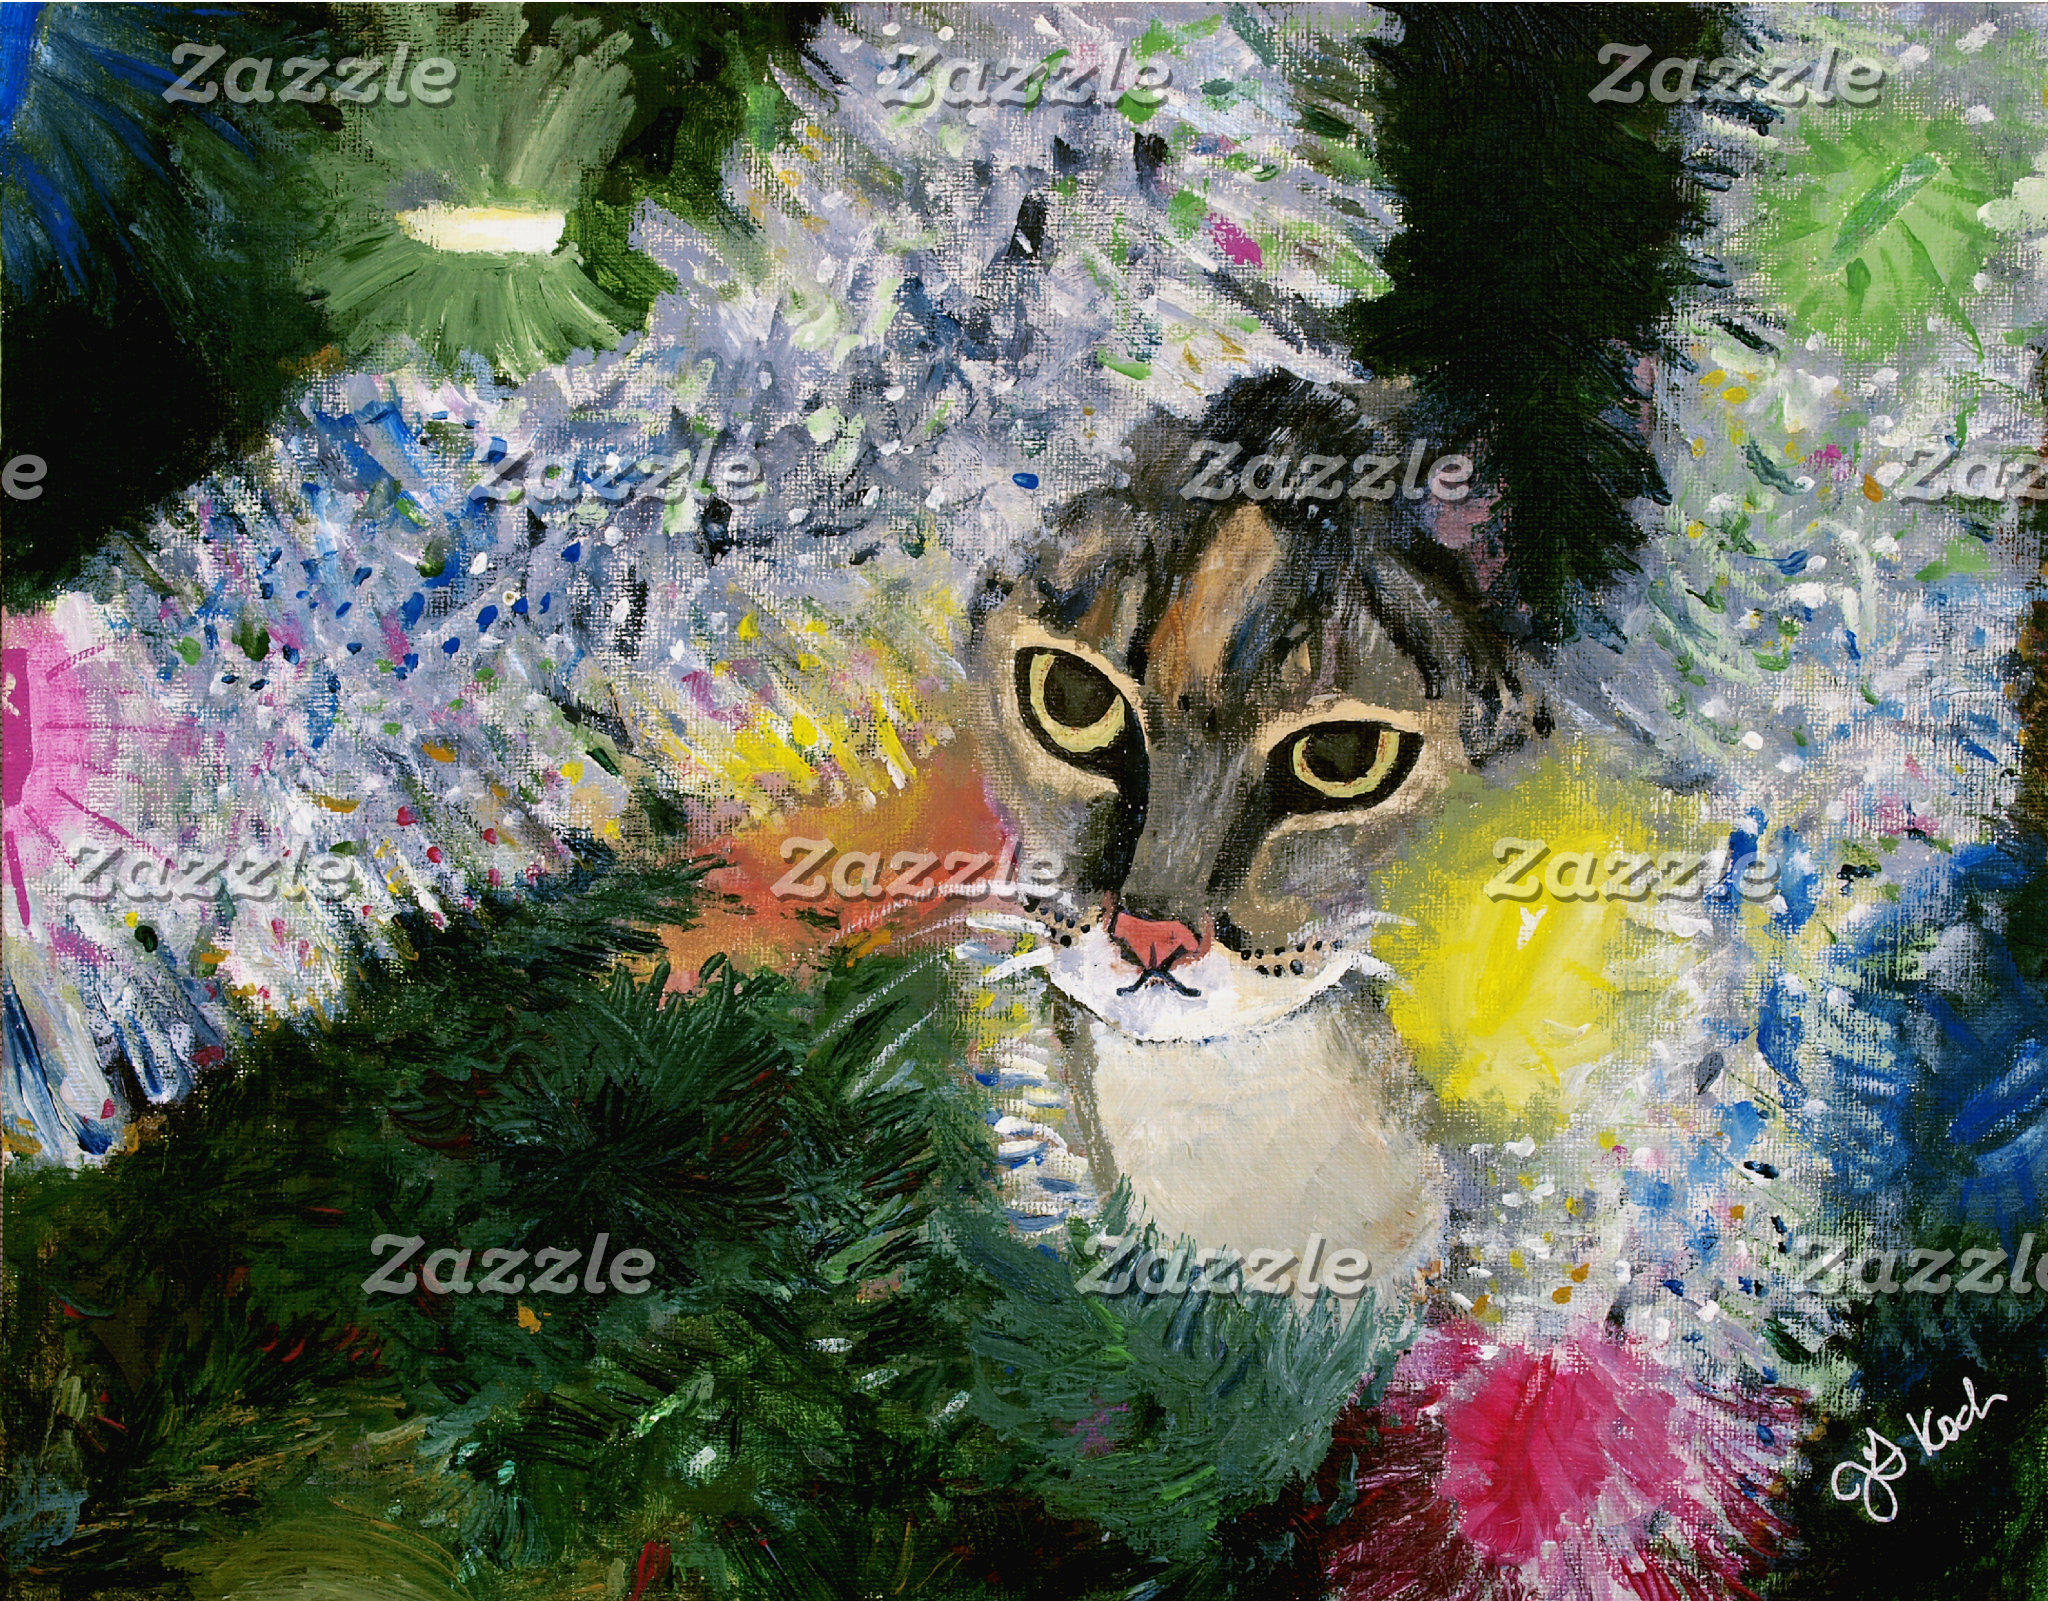 And a Cat in a Christmas Tree